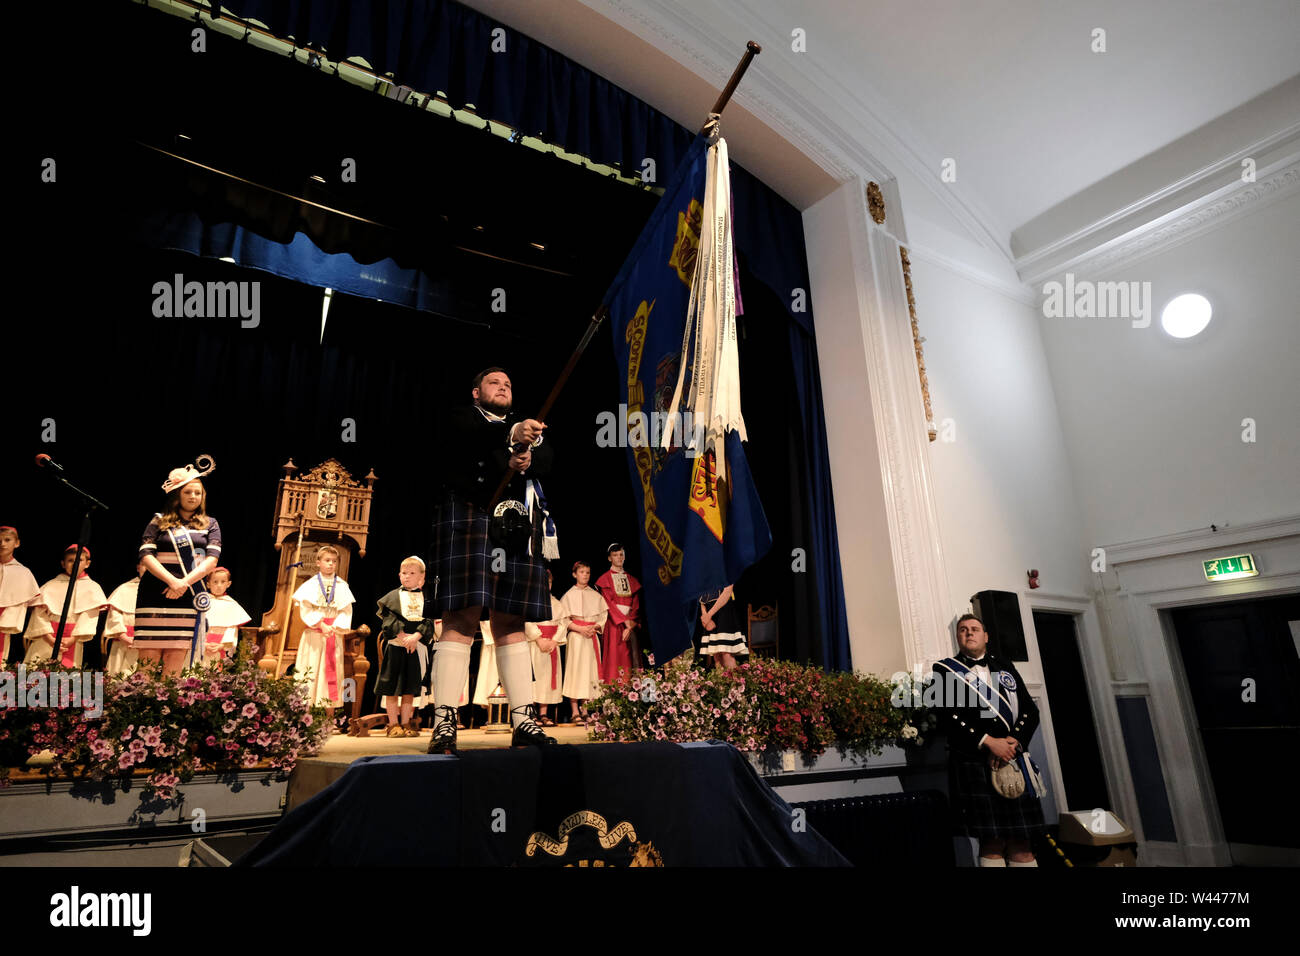 Innerleithen, UK. 19th July, 2019. St Ronans Cleikum Innerleithen Standard Bearer 2019, Ronan D Caine during his installation at the Cleikum Ceremonies in Memorial Hall, Innerleithen. as part of St RonanÕs Games Week, Friday 19 July 2019 . Instituted in 1827, The Games are the oldest organised sports meeting in Scotland and are now part of a week long festival that incorporates many events for every age group. Central to the festivities are the Cleikum Ceremonies when the town's association with its Patron Saint, St. Ronan, is celebrated ( Credit: Rob Gray/Alamy Live News - Stock Image